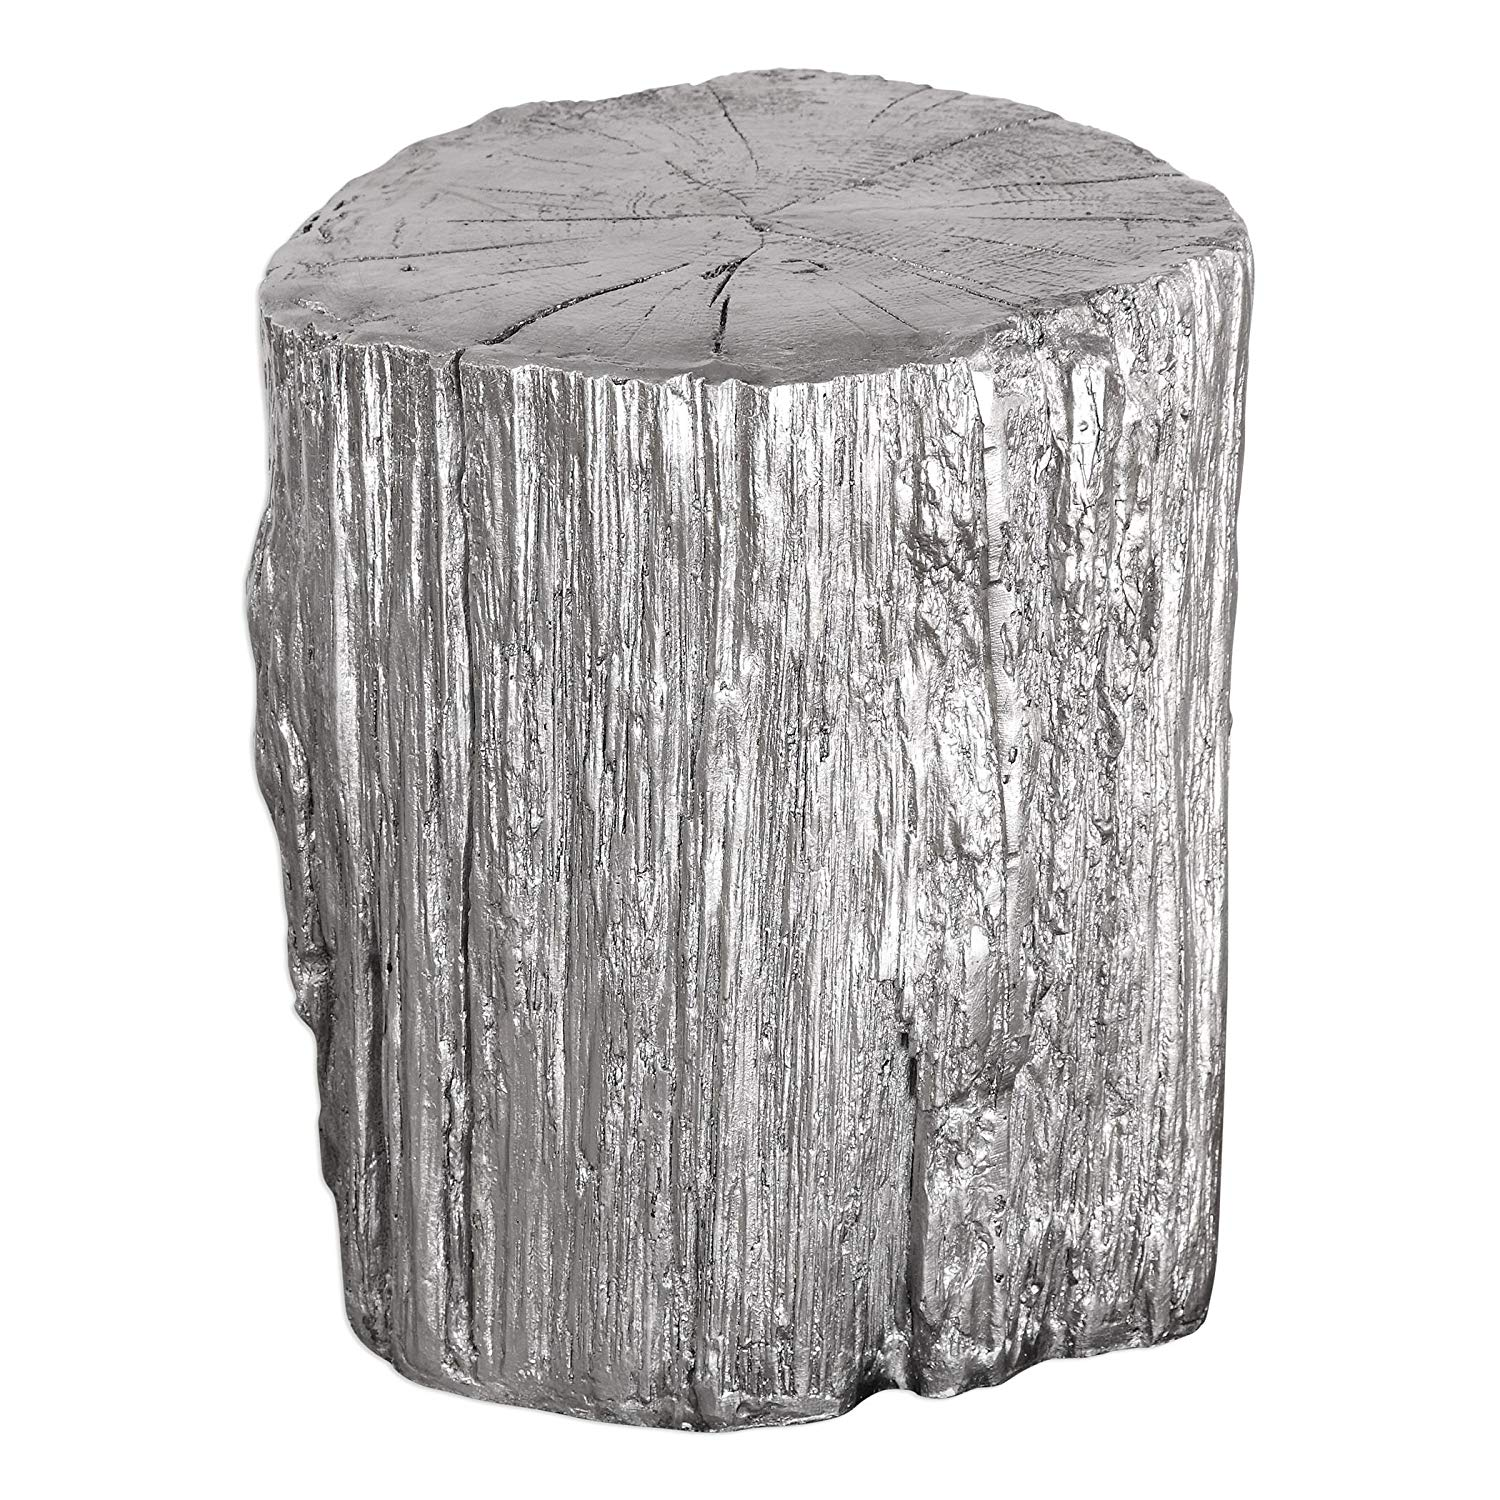 elegant silver tree stump accent table pedestal round faux bois trunk naturalist kitchen dining pottery barn lorraine dorm room furniture modern outdoor nic safavieh home